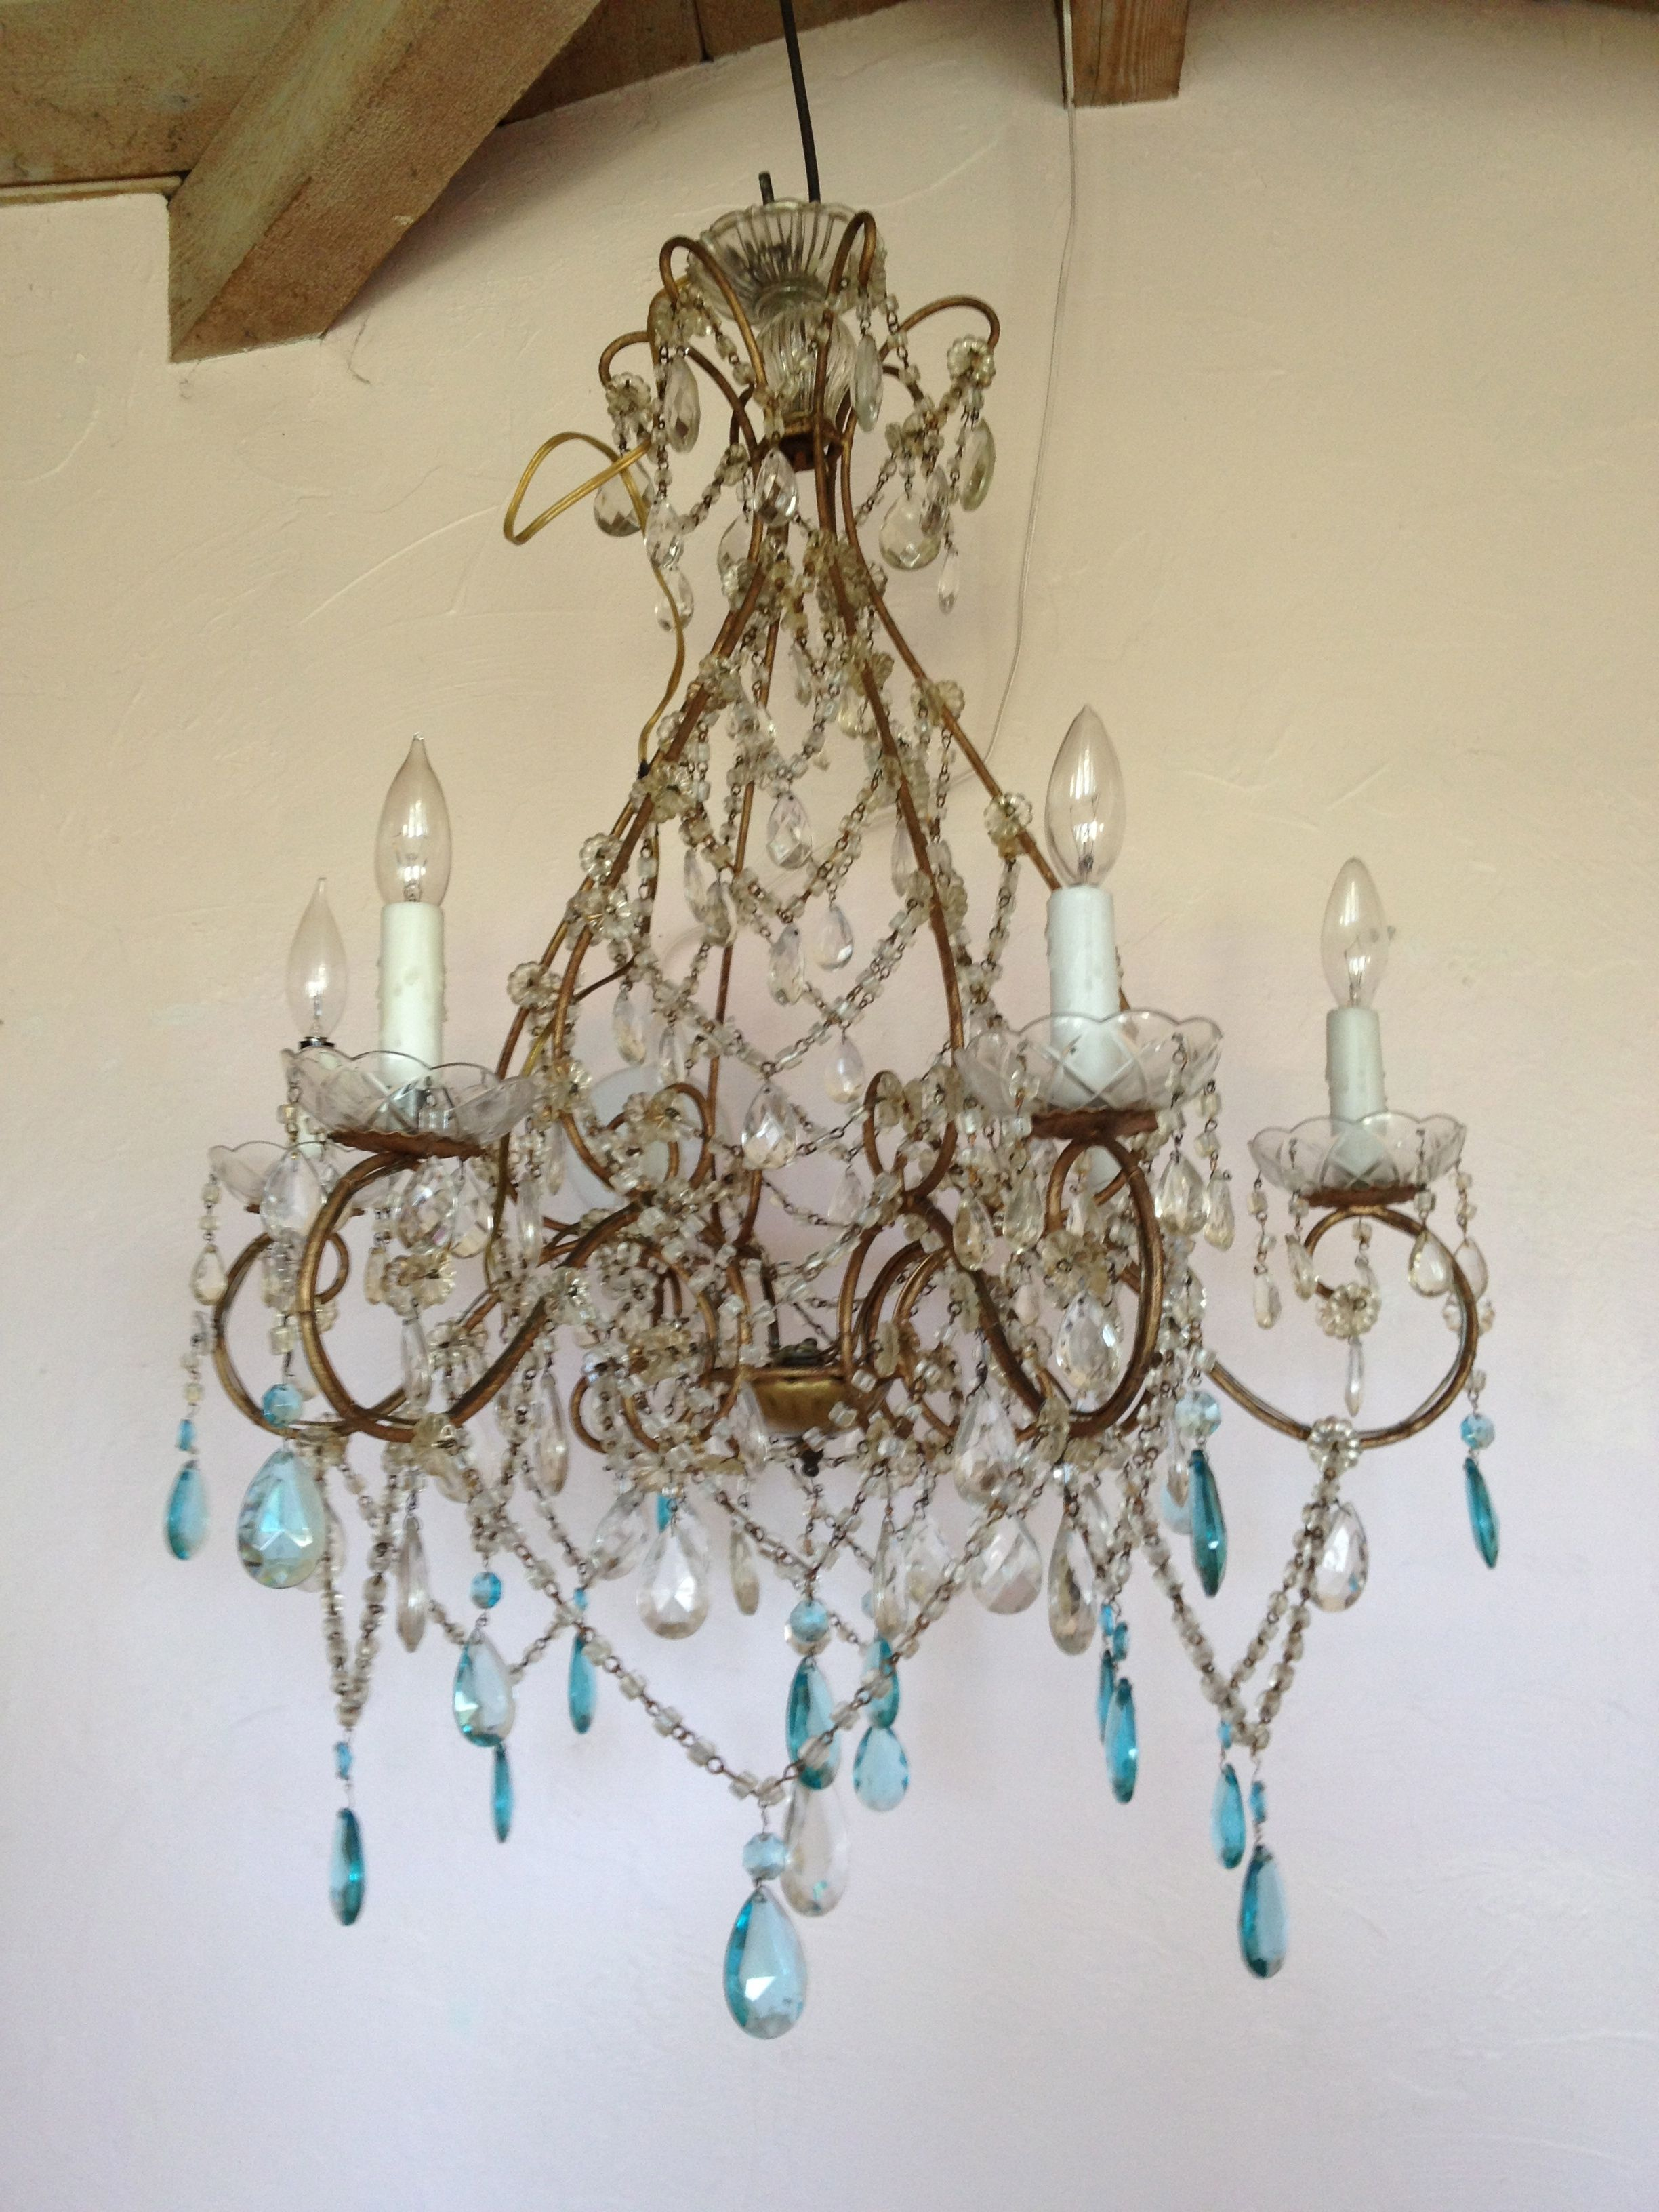 Italian chandelier with aqua prisms